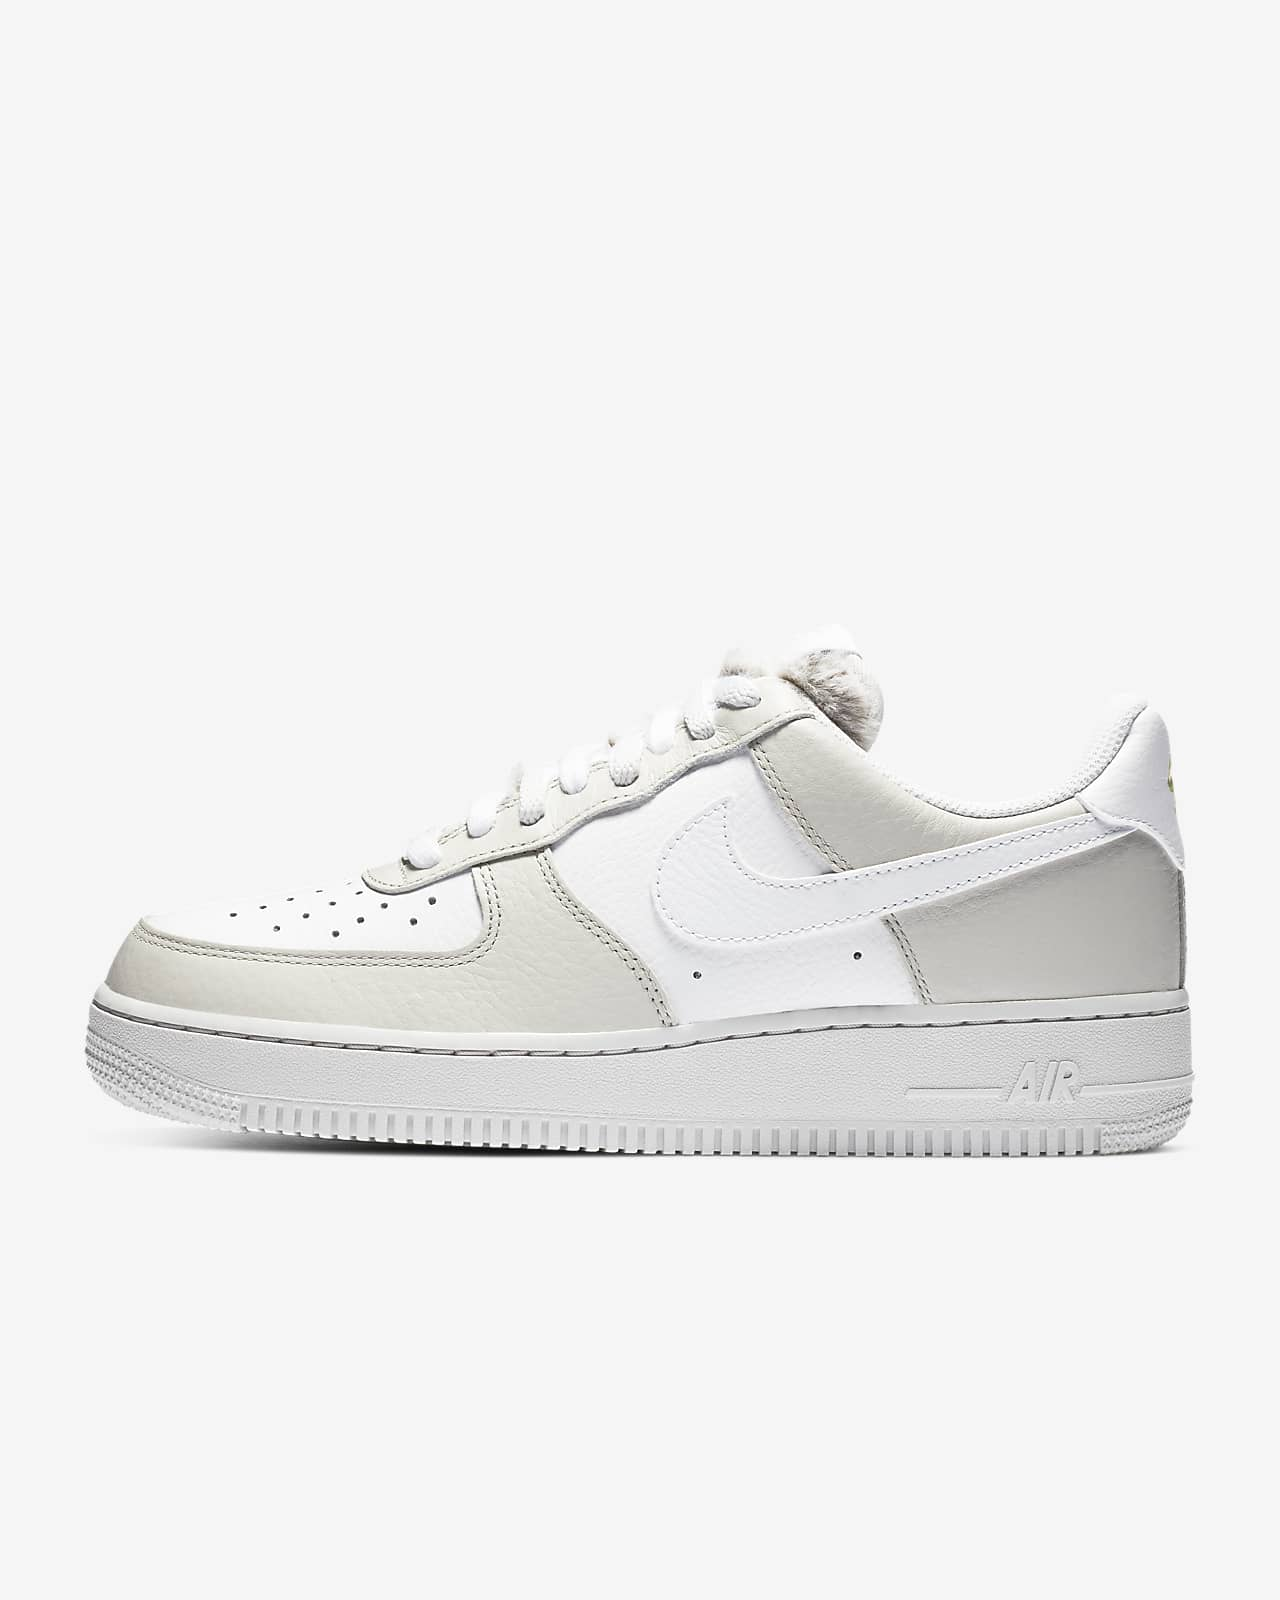 Chaussure Nike Air Force 1 '07 pour Femme